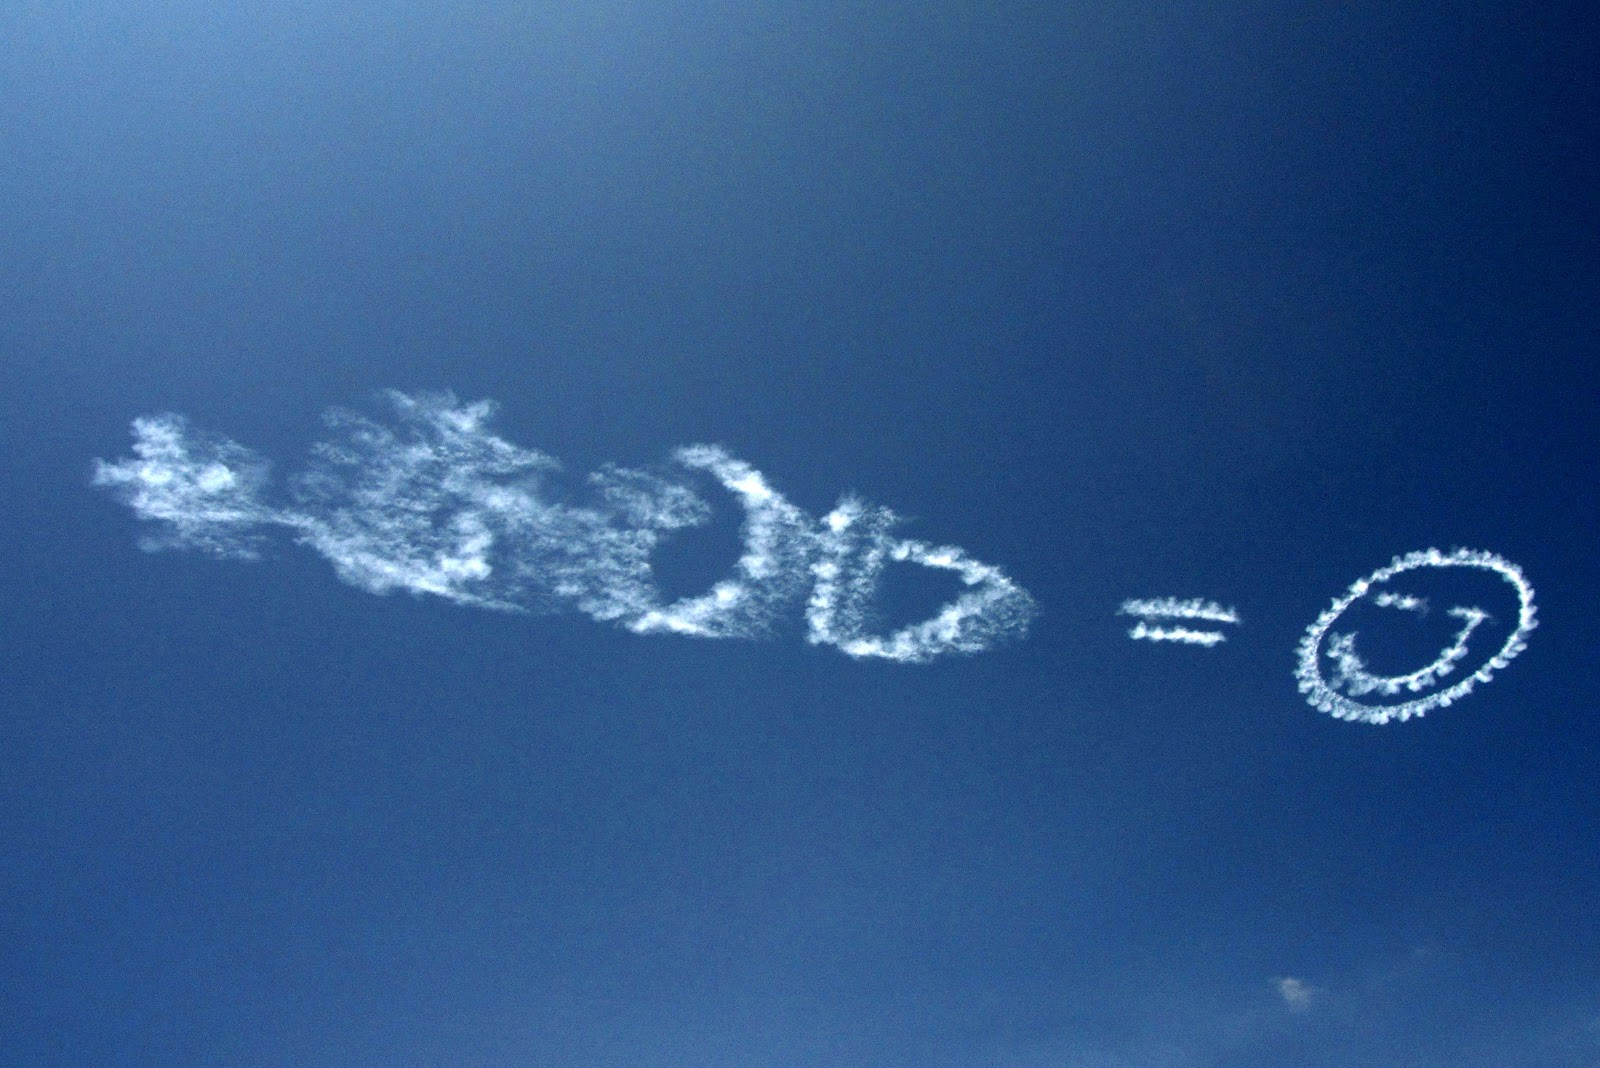 Writings in the sky